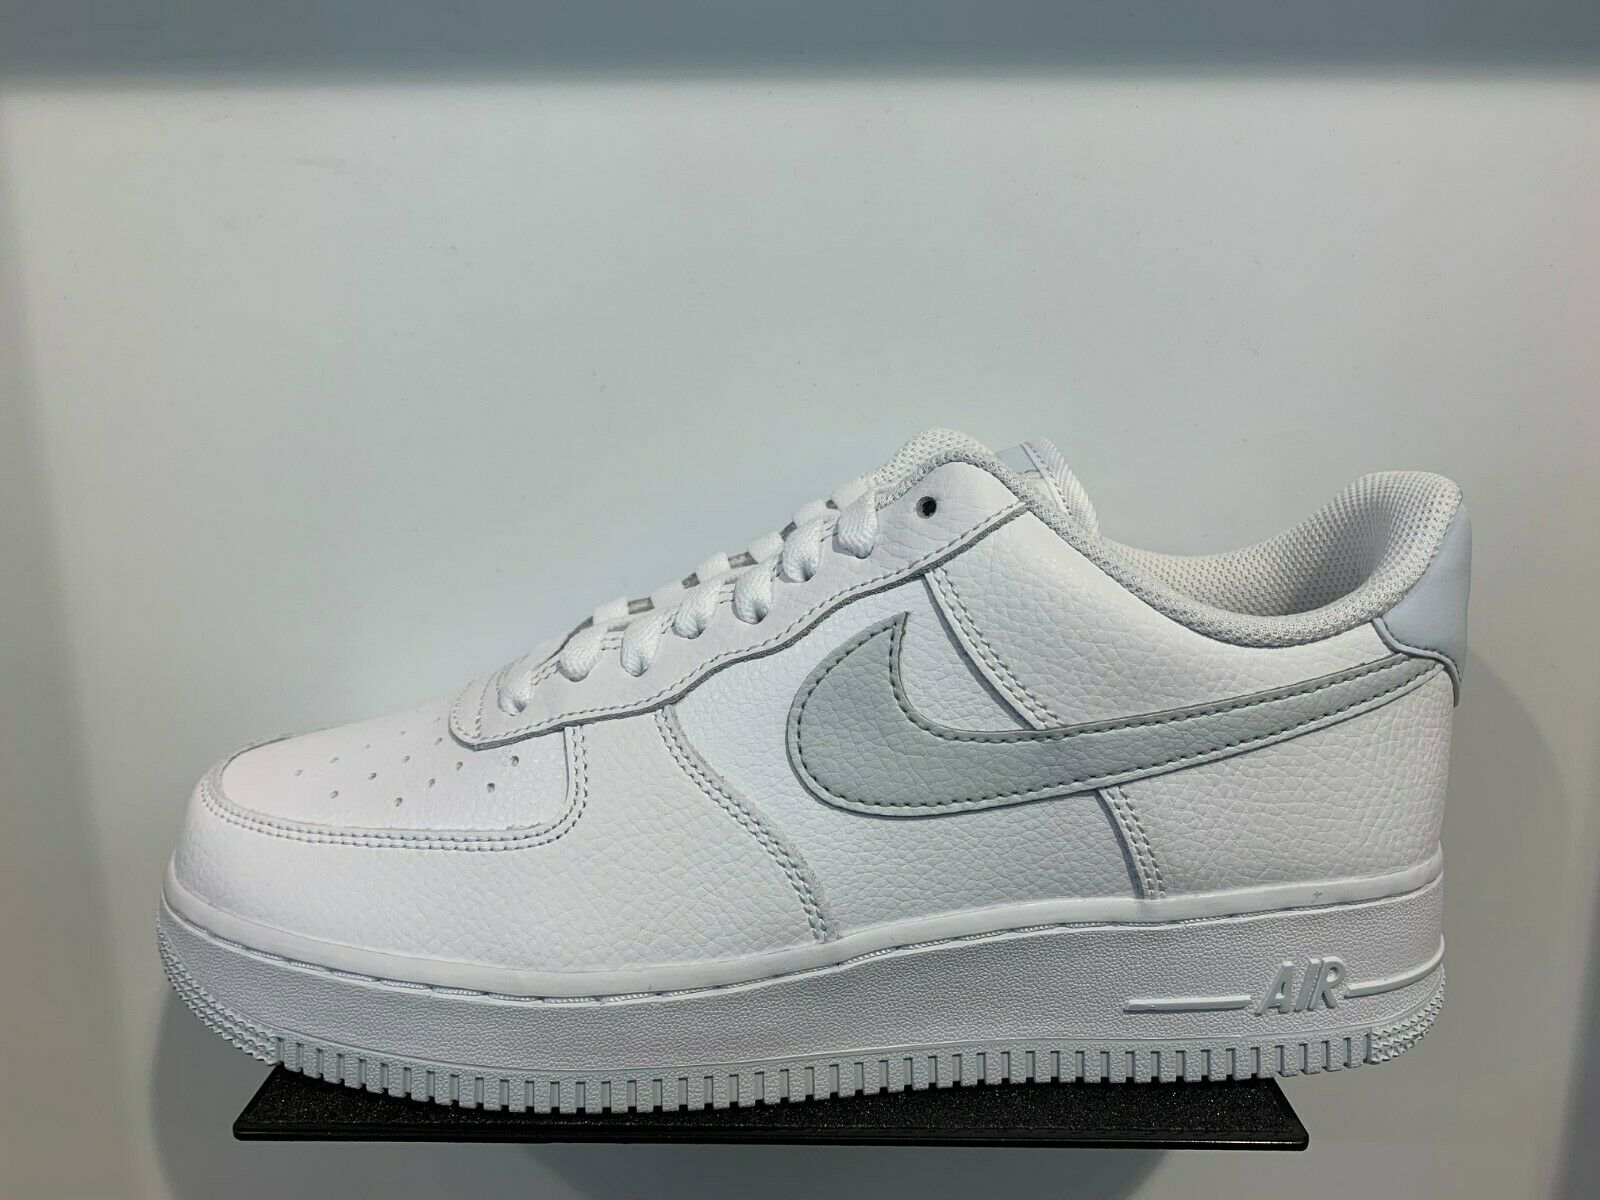 Nike Air Force 1 Low GTX White Grey Reflective Silver 3M Heel Size 8-13 New